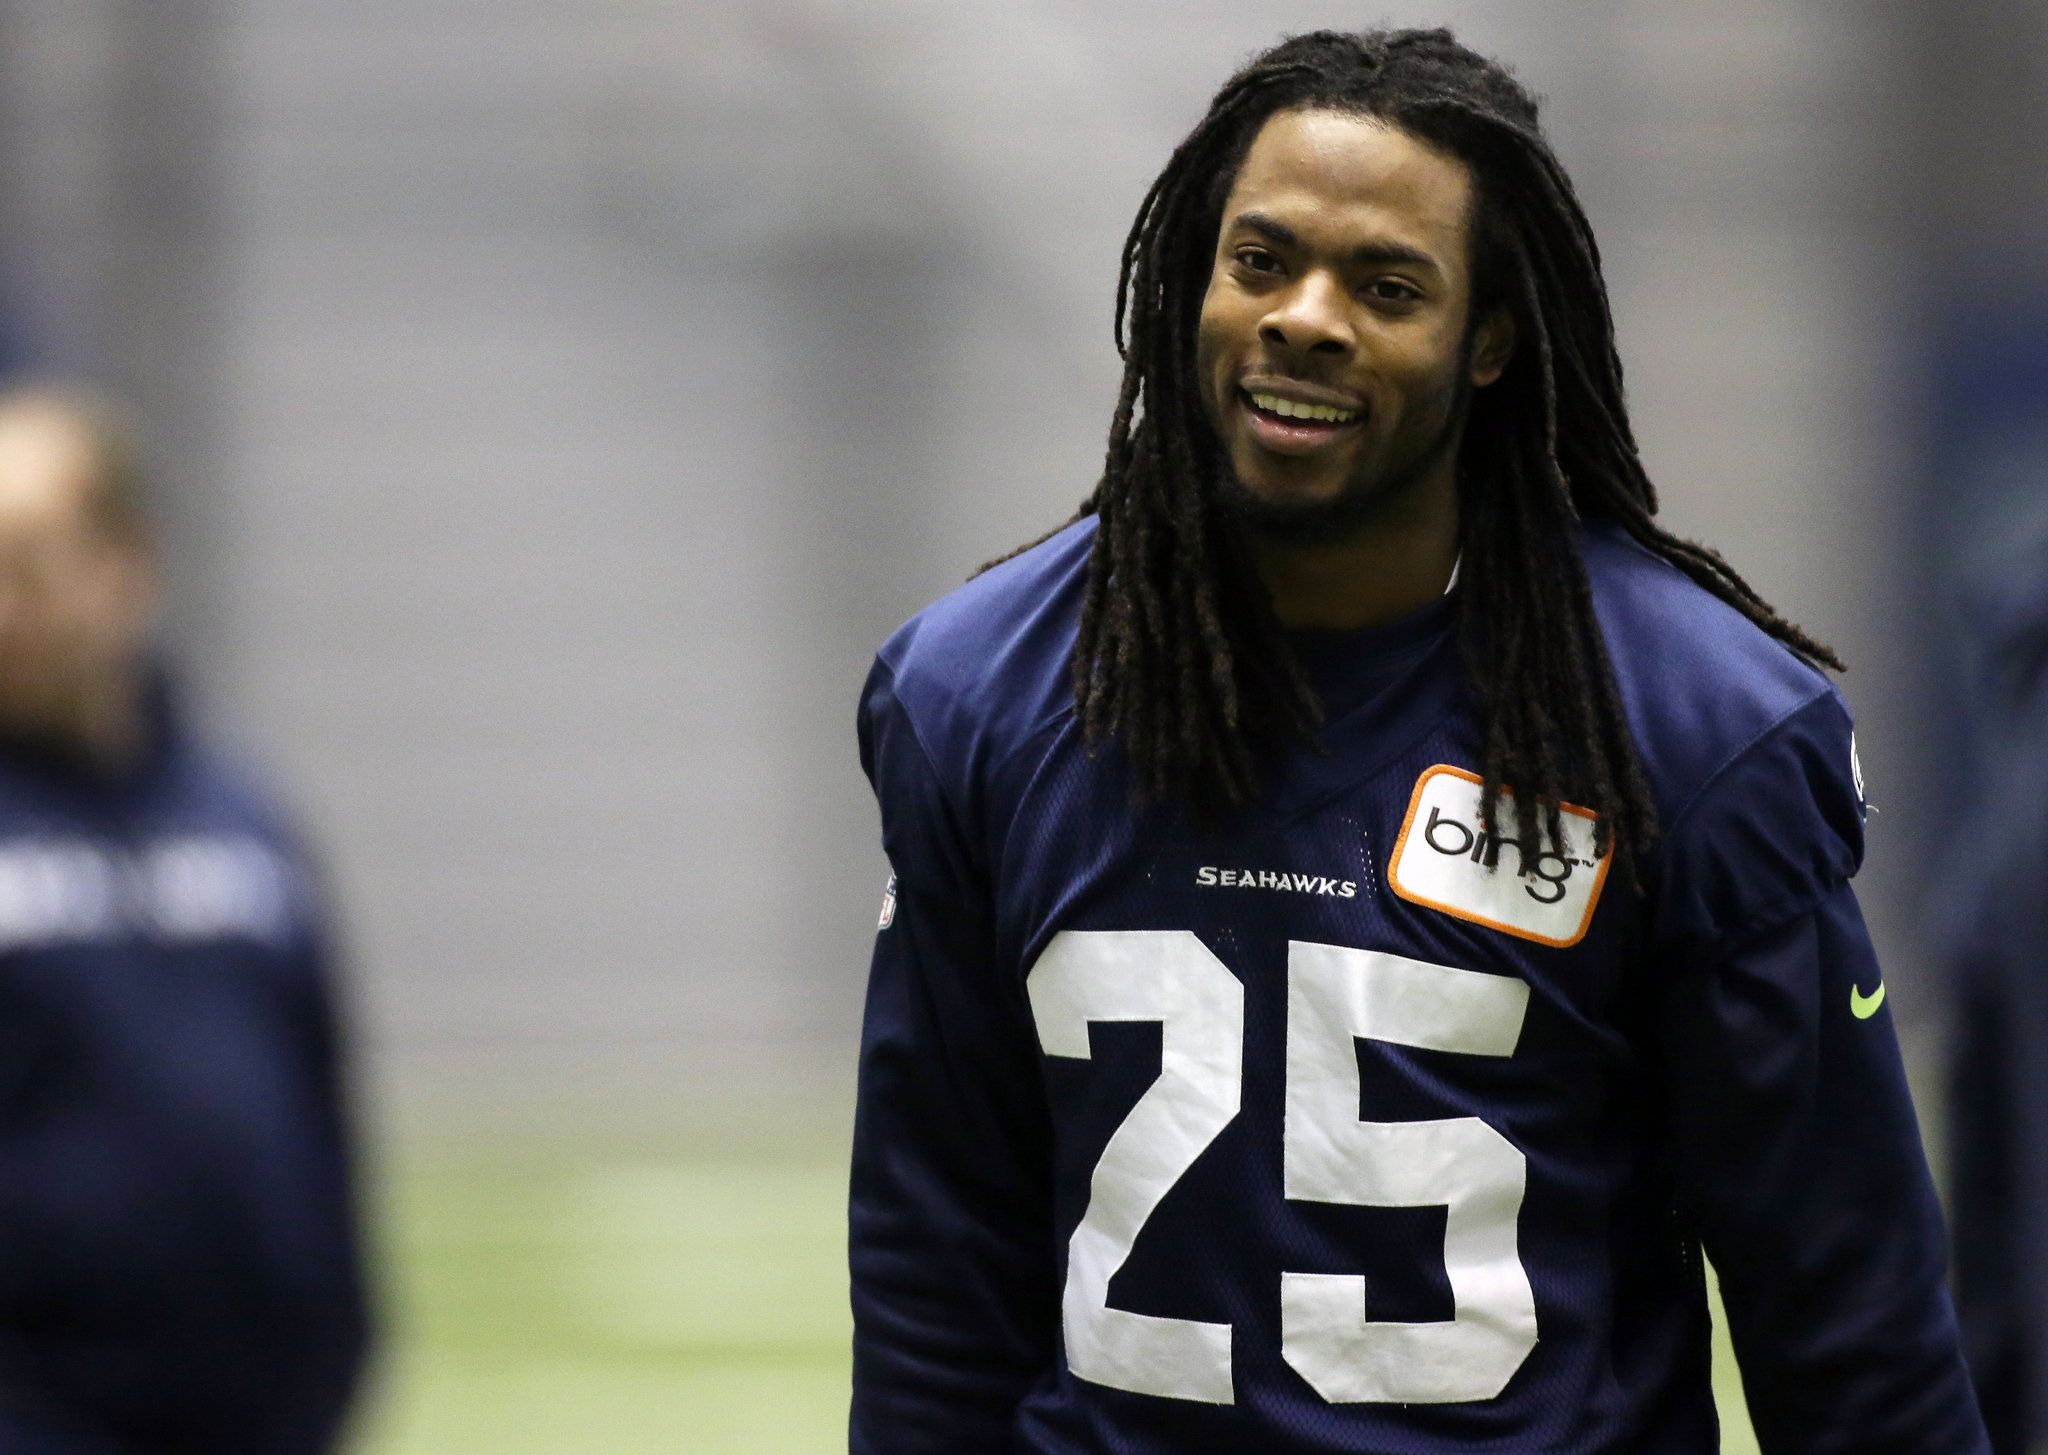 Nfl Playoffs Seattle Seahawks Big Cornerbacks Face Challenge In Atlanta Falcons Star Receivers Richard Sherman Nfl Wives Sherman